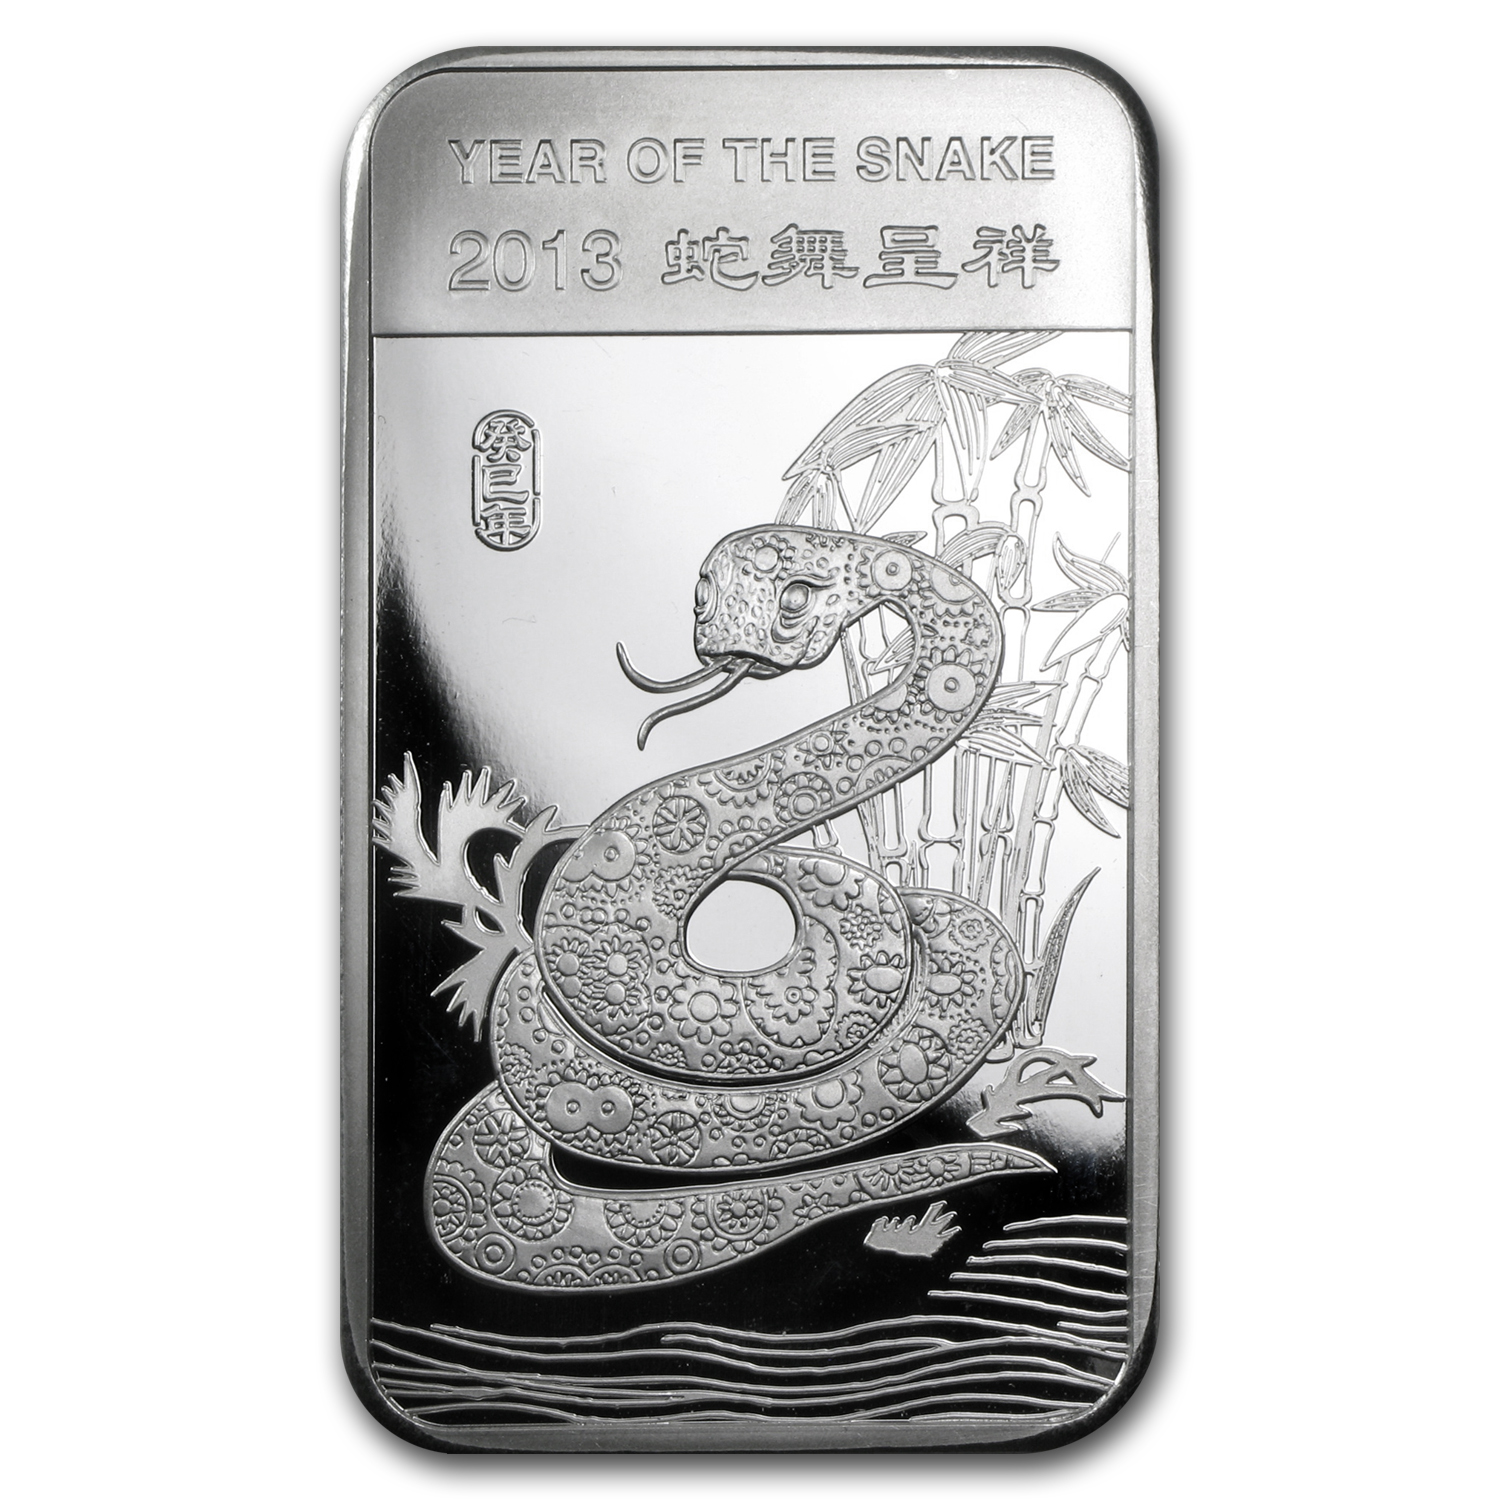 5 oz Silver Bar - APMEX (2013 Year of the Snake)